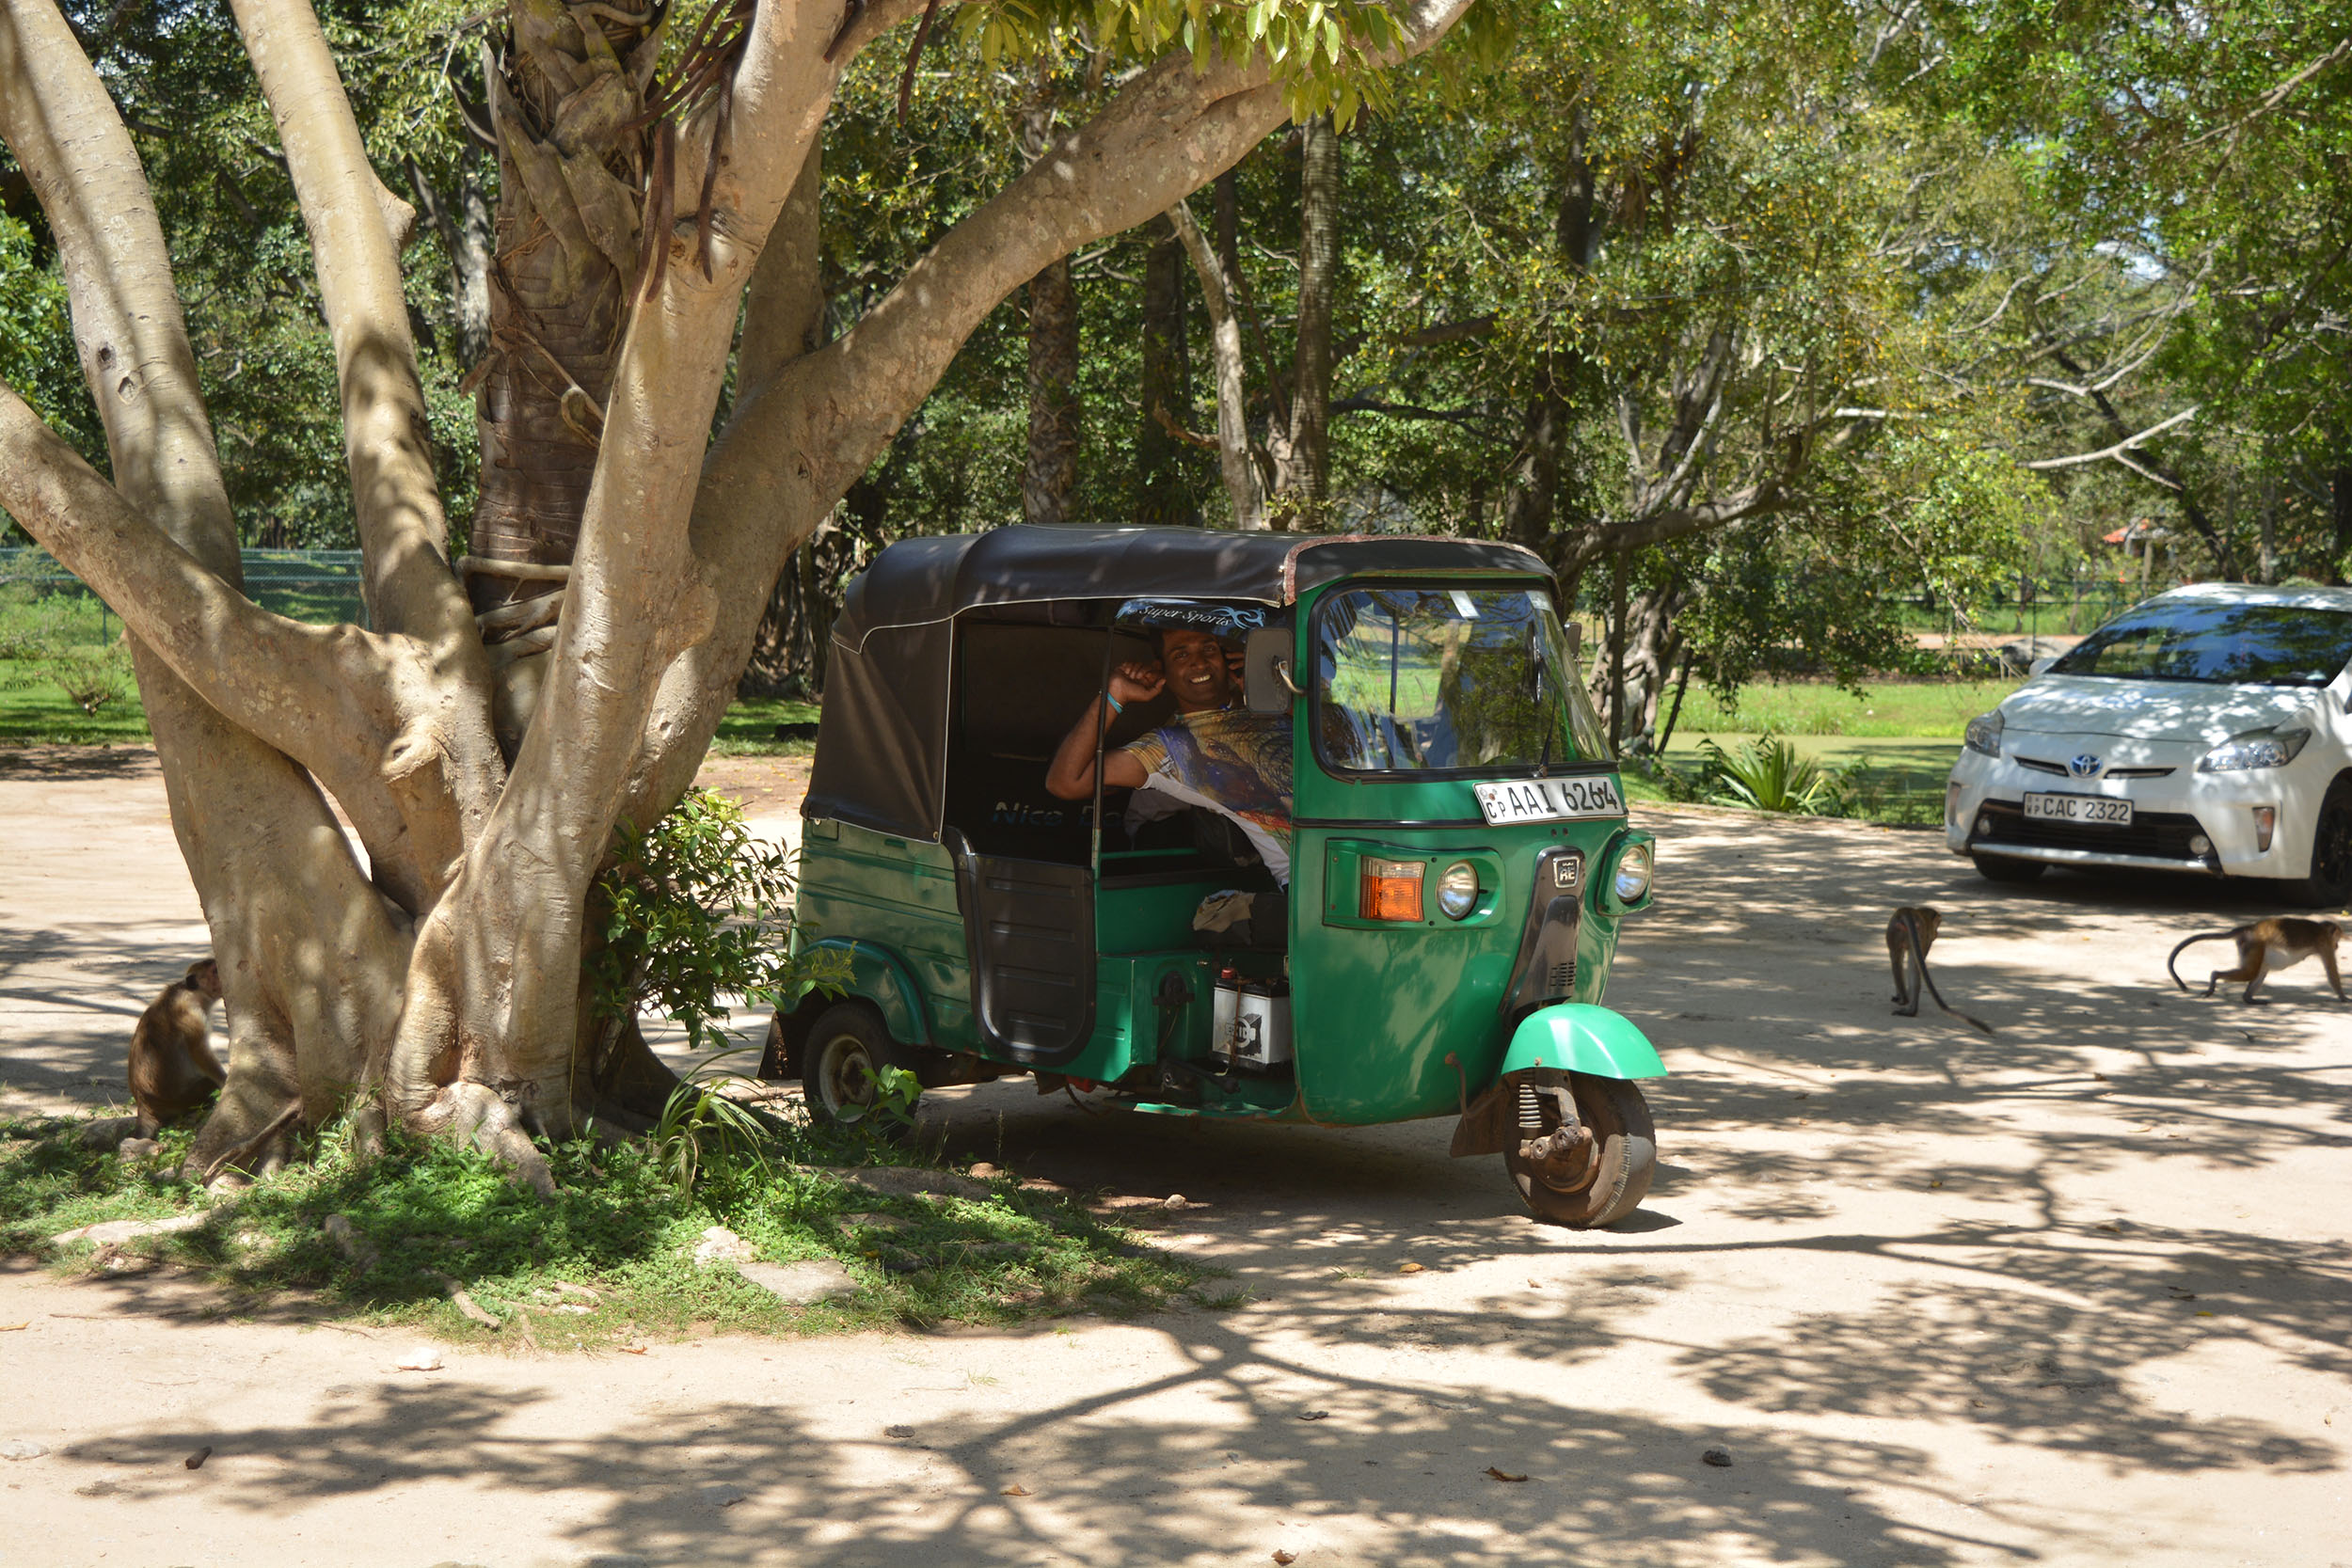 Tuk-tuk drivers carry glass water bottles